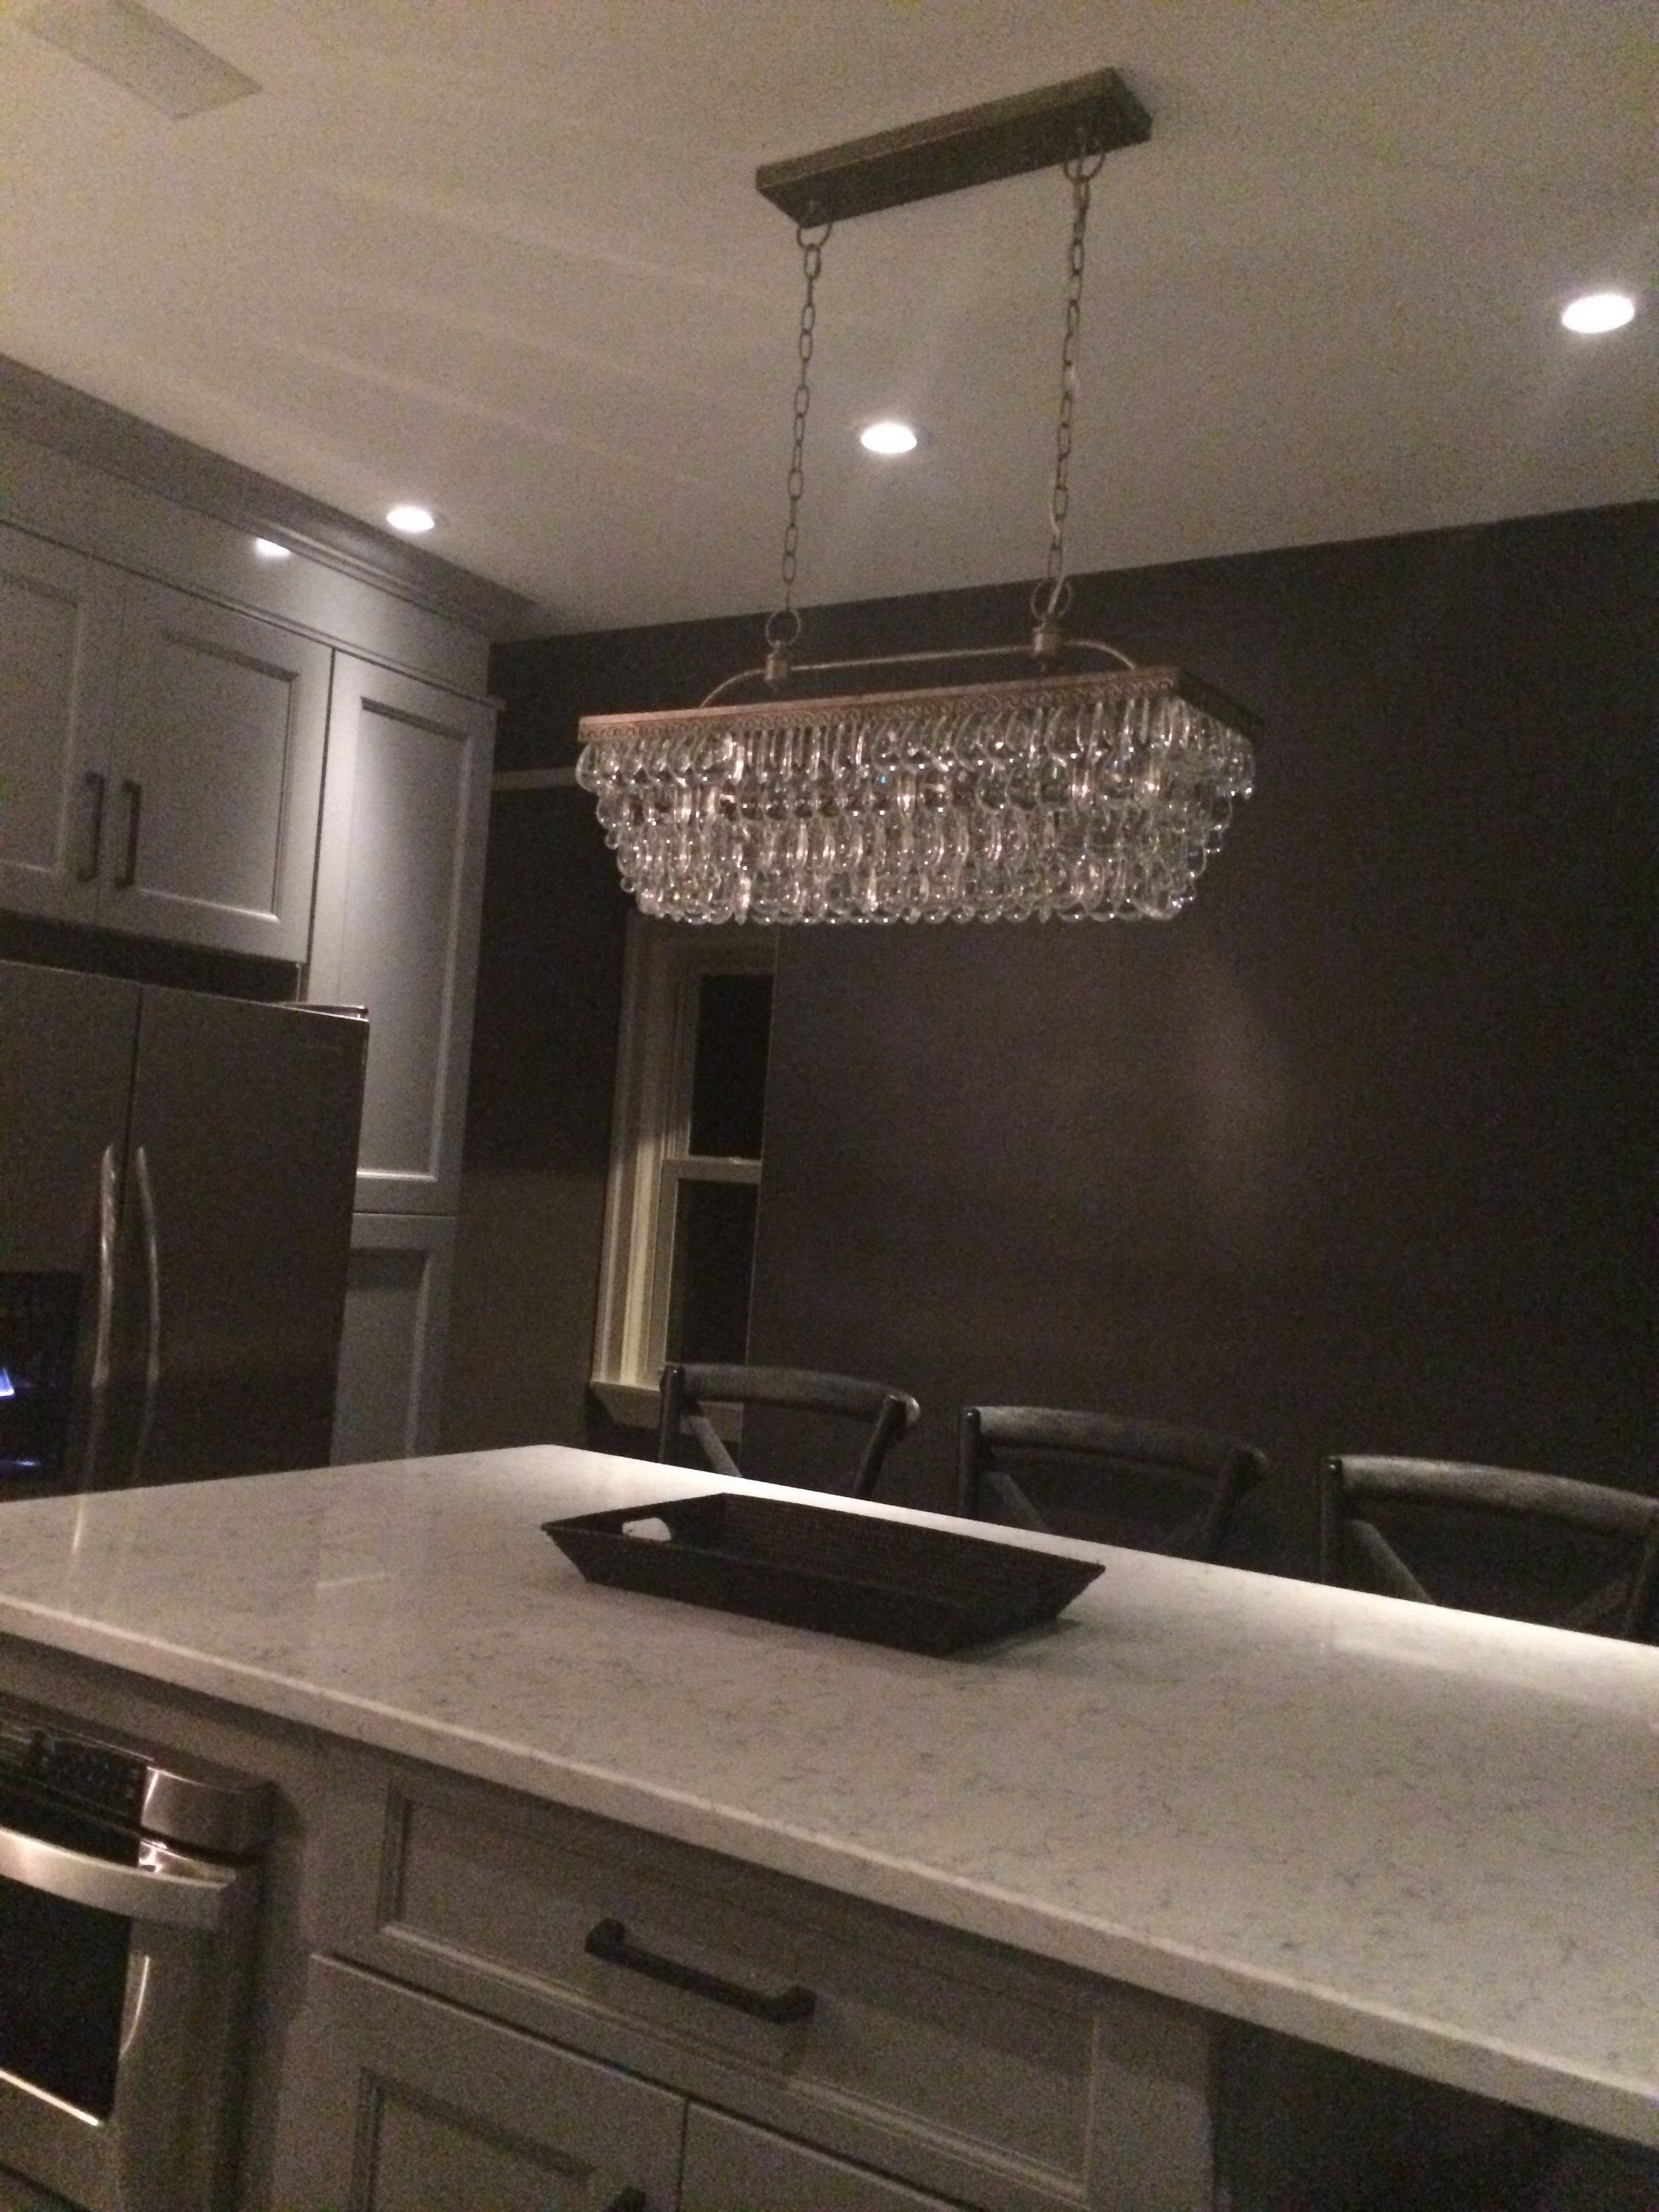 Pottery Barn Kitchen Lighting The Island Chandelier Pottery Barn Clarissa Glass Drop Extra Long